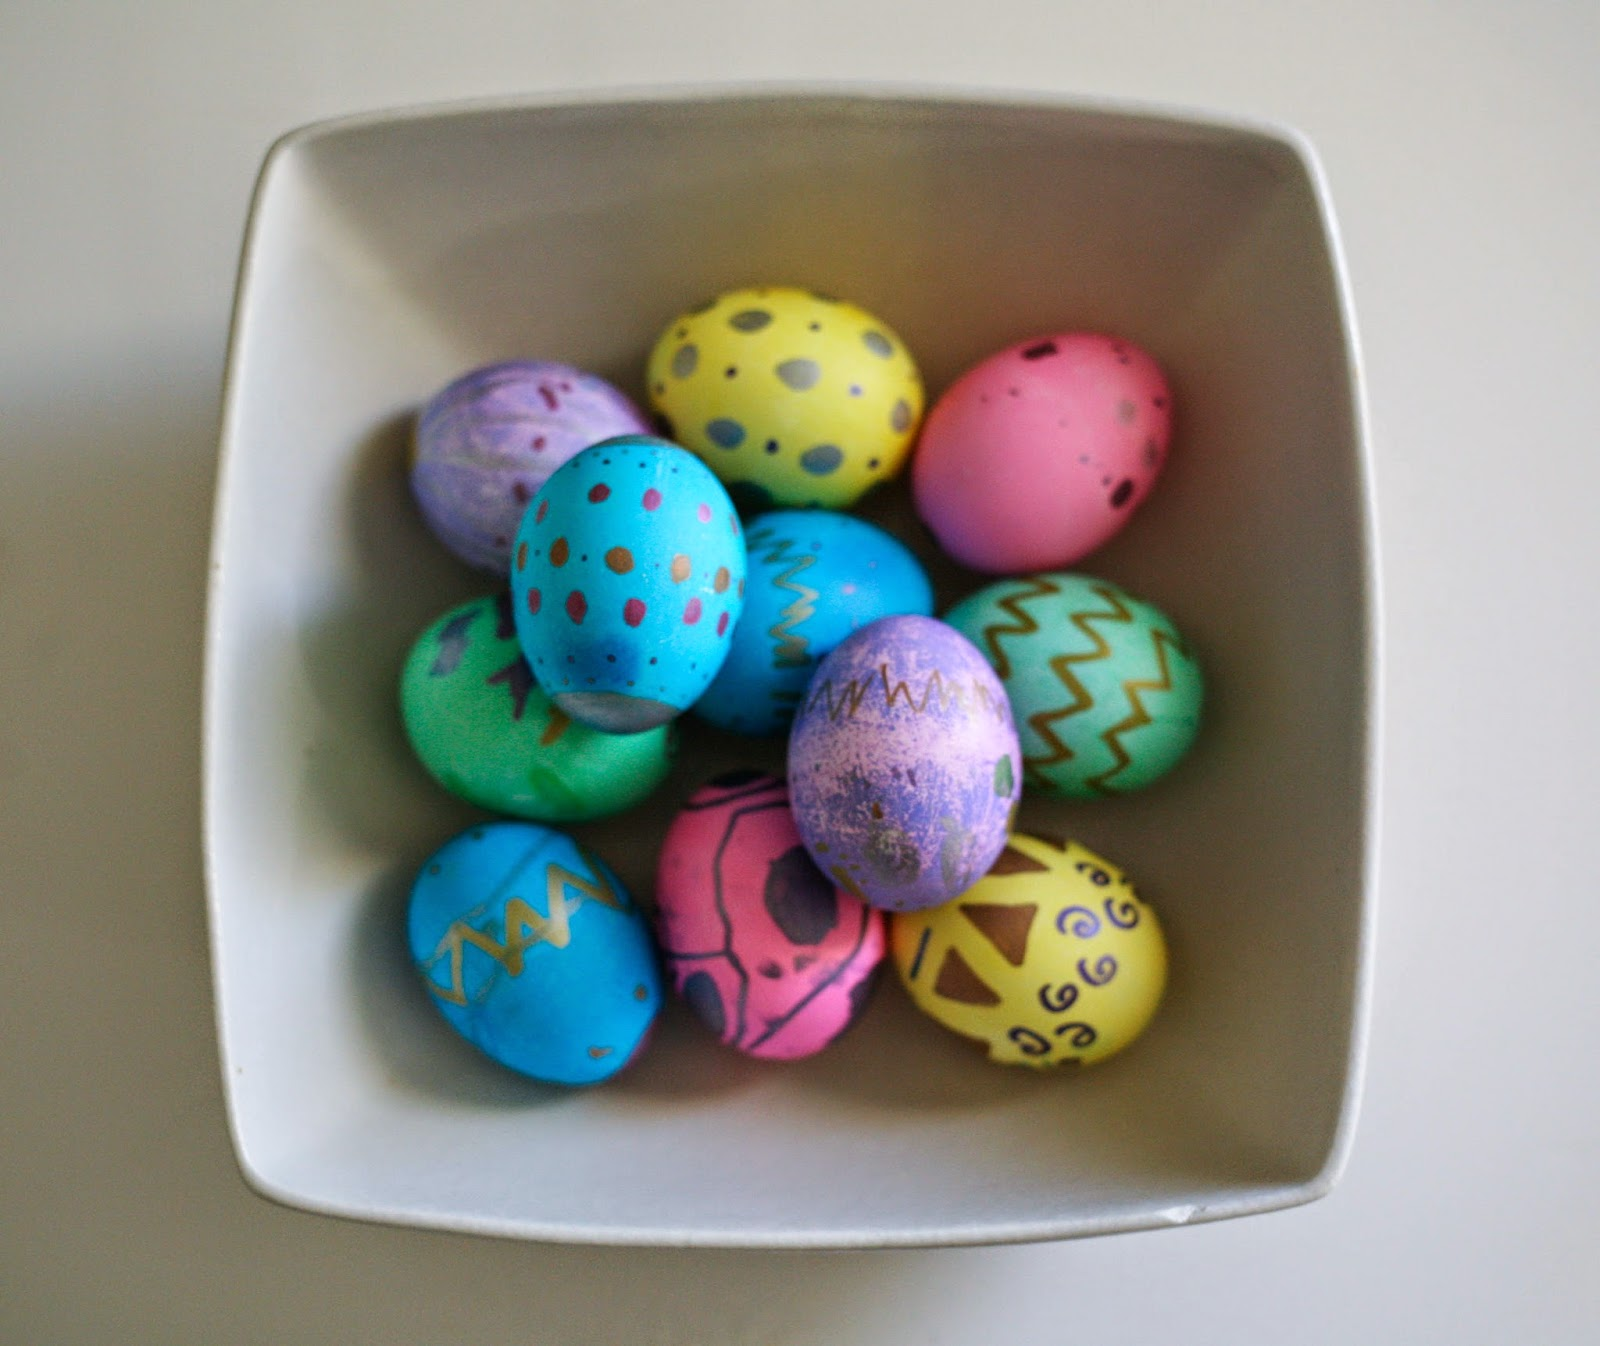 Be Sure To Like PAAS On Facebook For Details About The Ultimate Egg Off Easter Contest Starting 3 18 You Could Win 1K